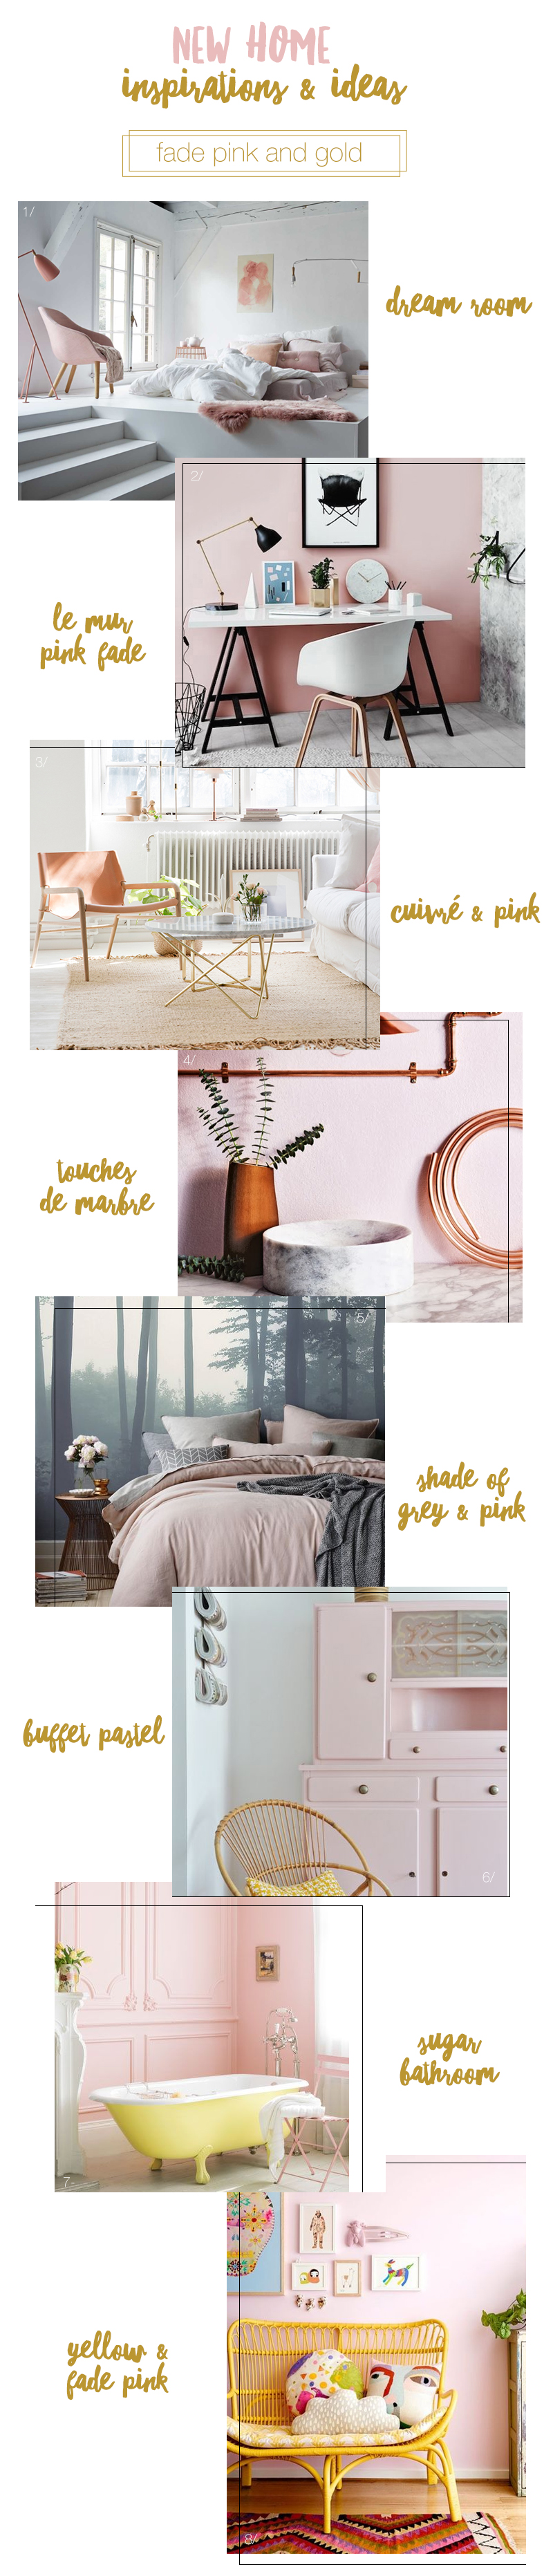 news home ideas selections